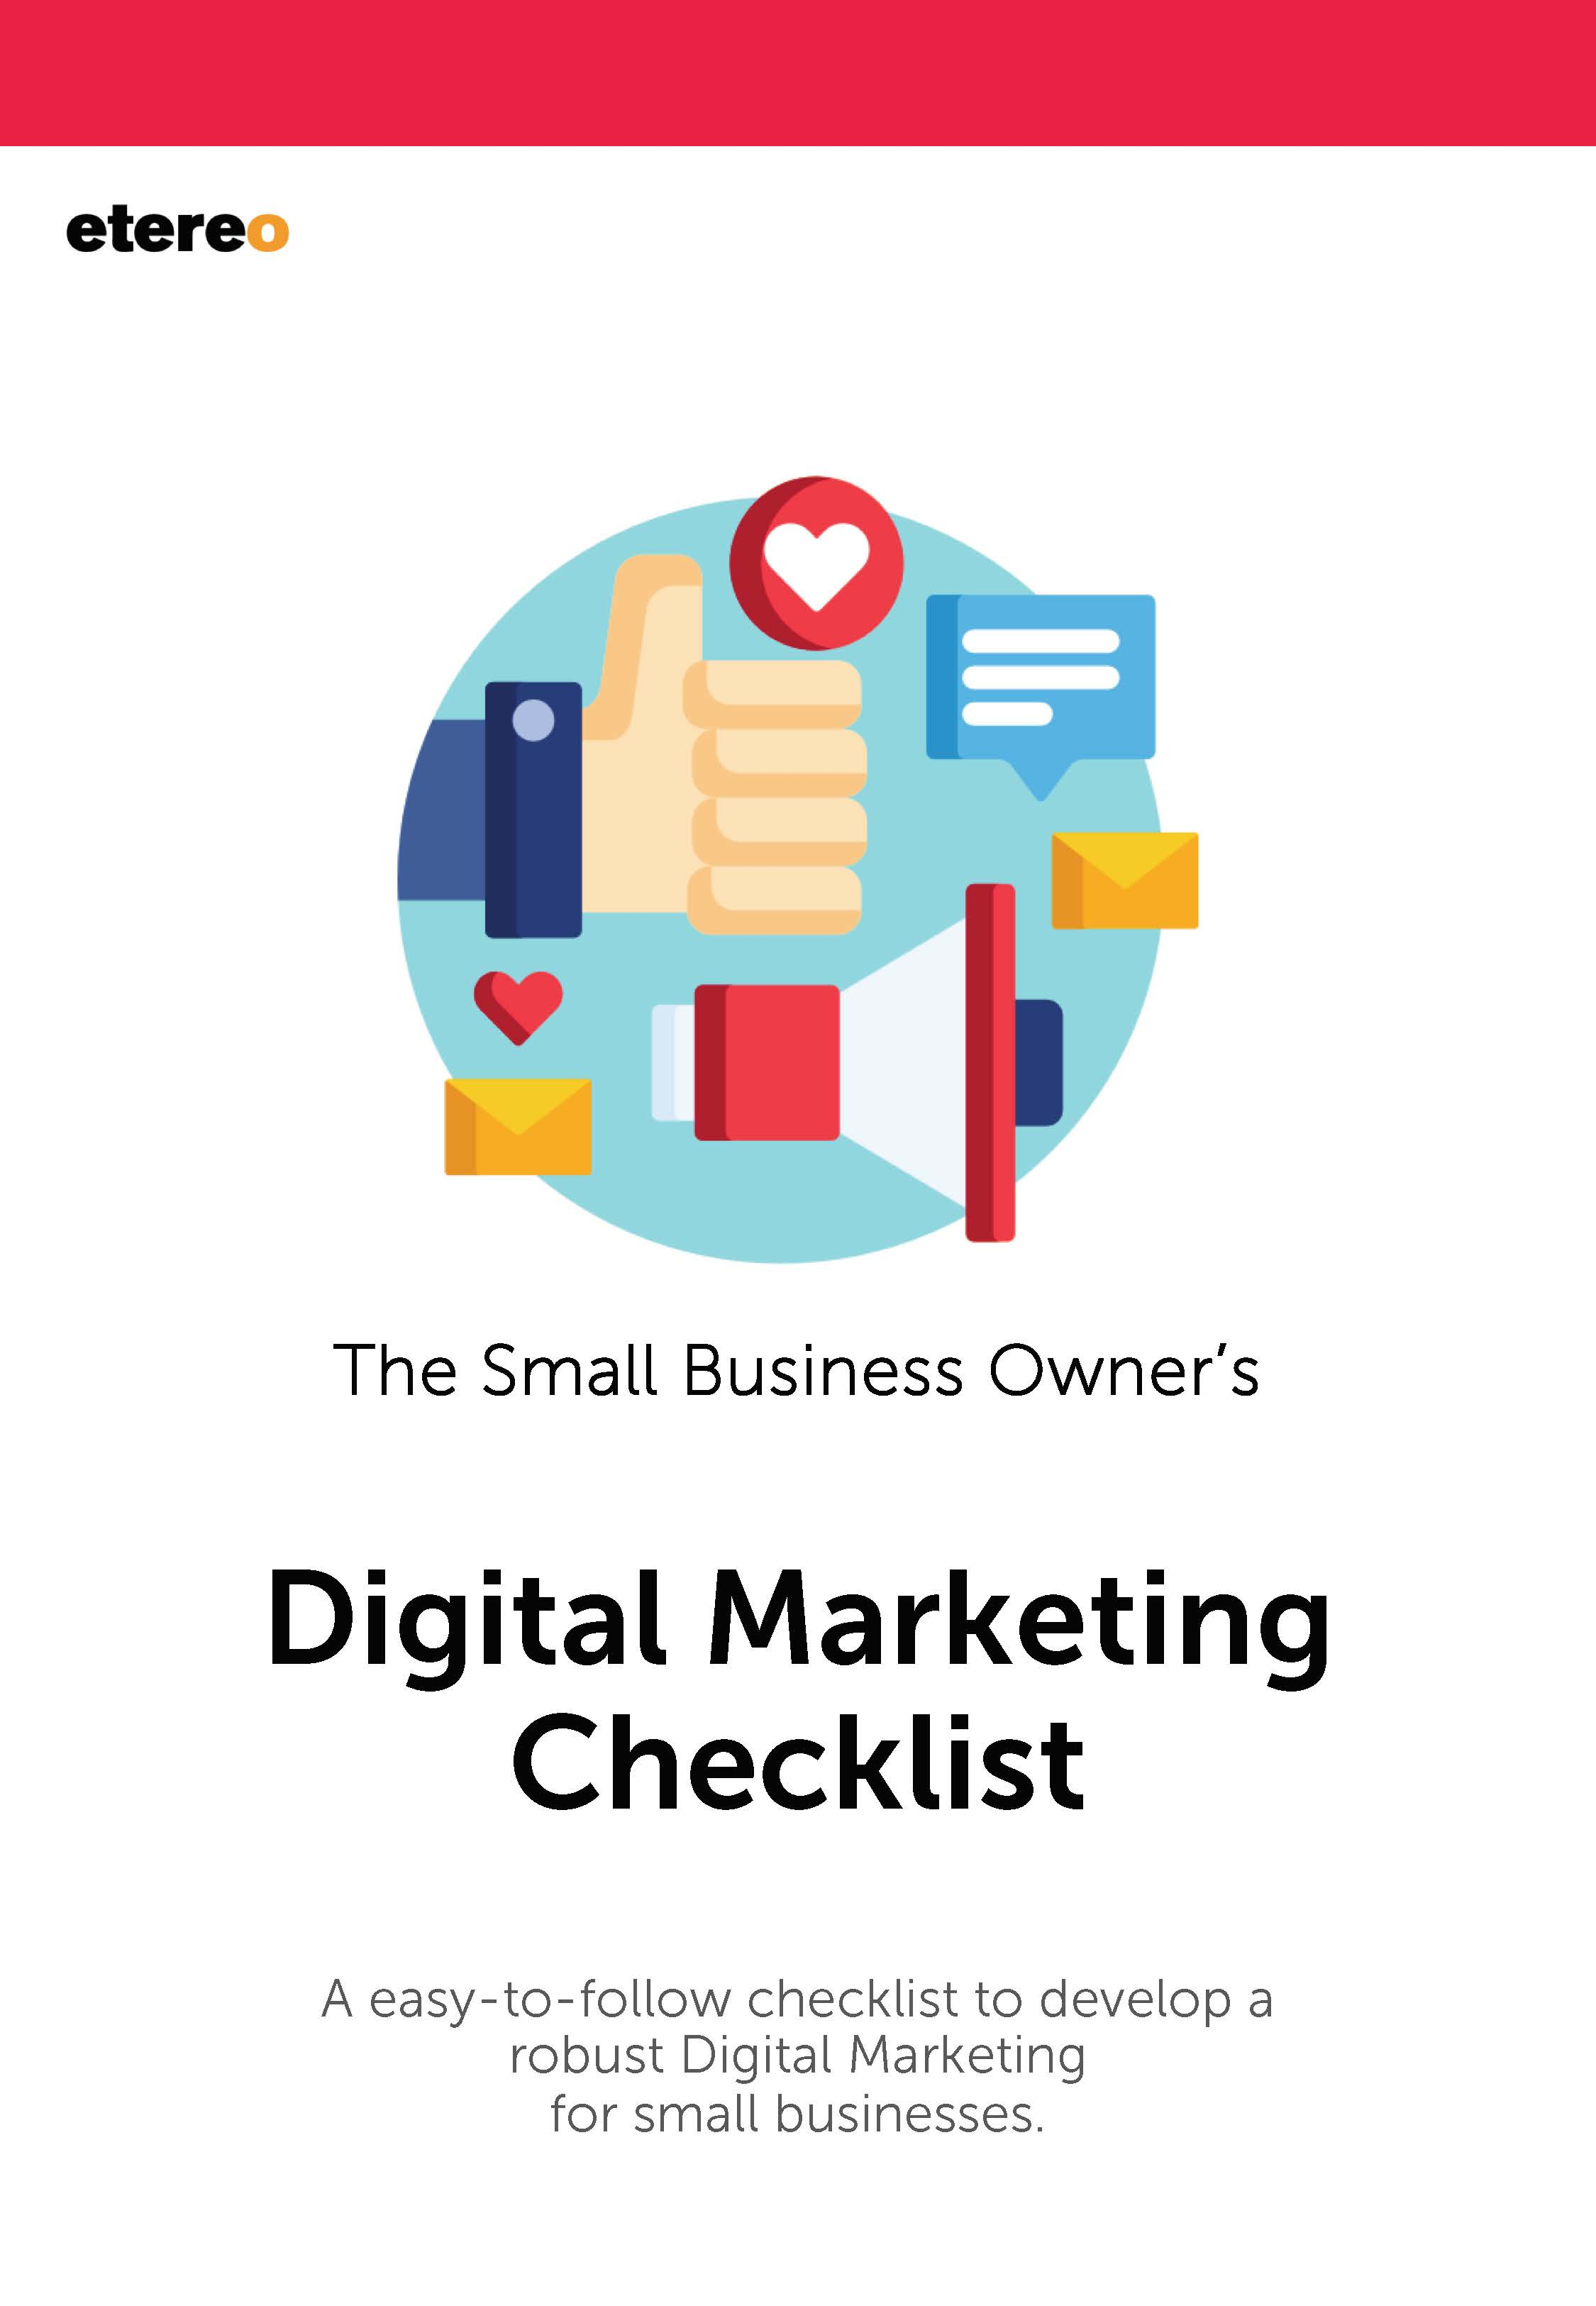 The Small Business Owner Digital Marketing Checklist